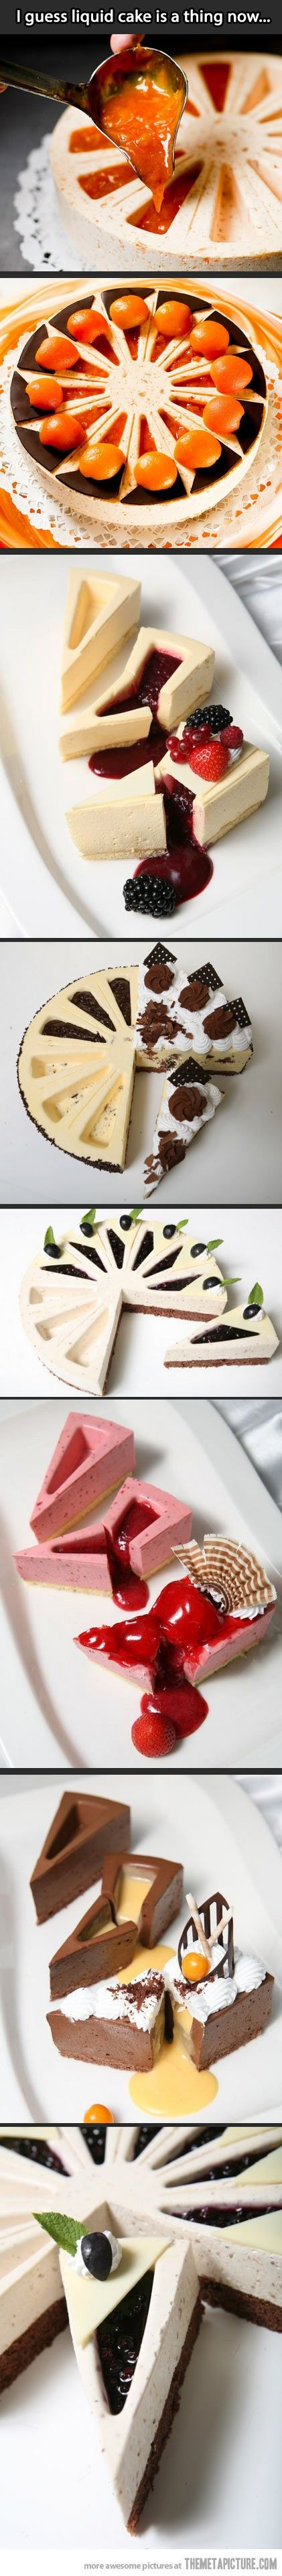 There are special molds used to make these cakes https://www.youtube.com/watch?v=zeLw-UmnPfg I searched for the products (they are made in Hungary) and I think they are pretty expensive... You can order the Moulds from EBay or direct from them at: http://www.zilacakemould.com/en/products